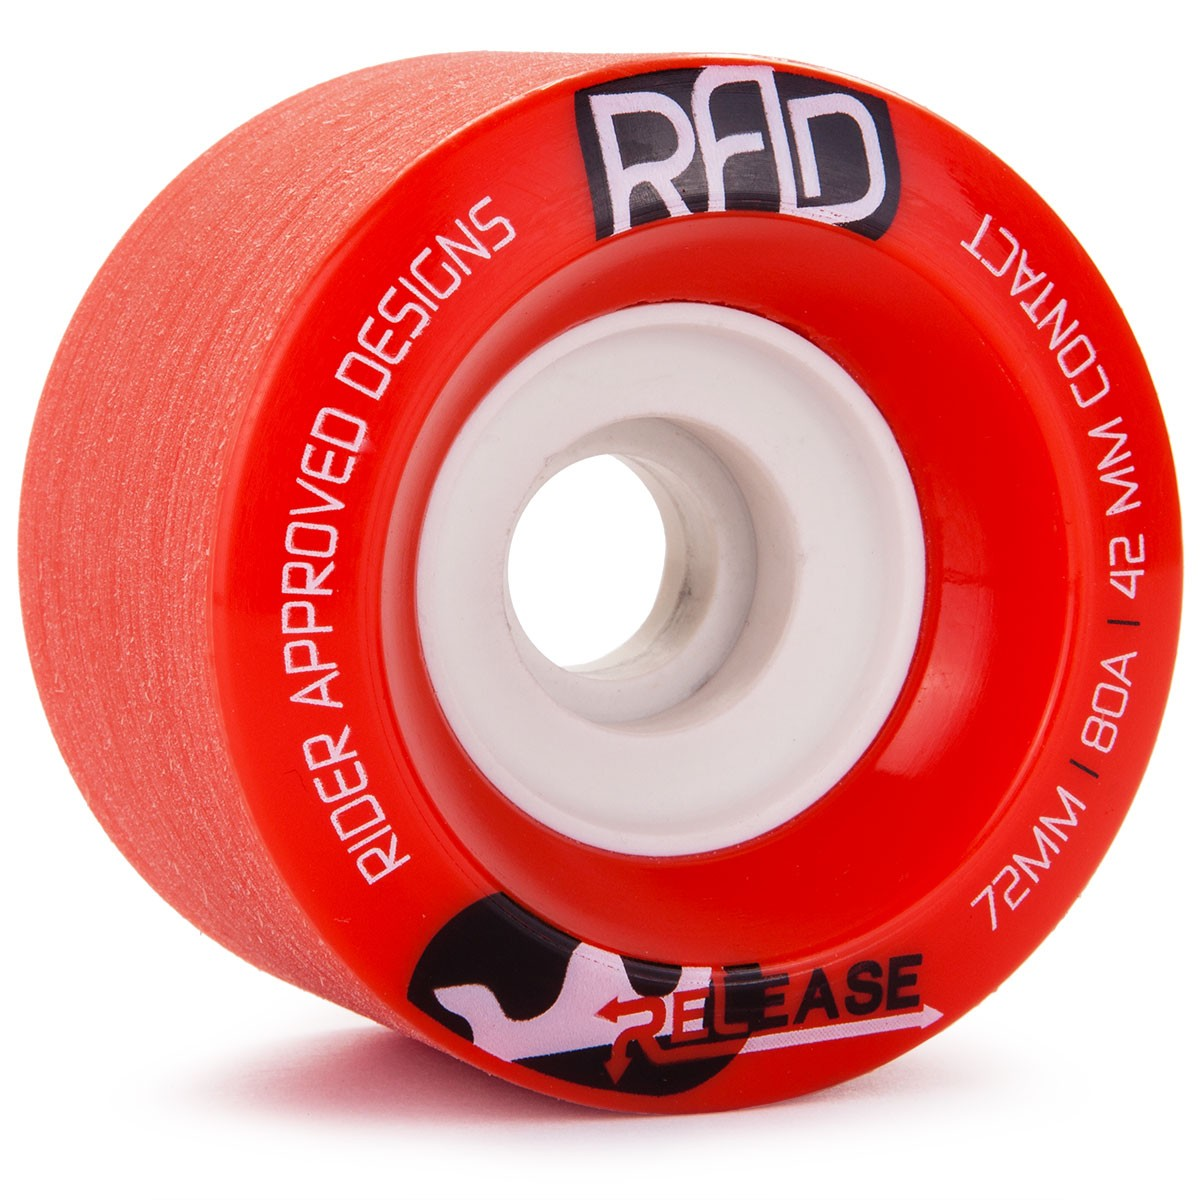 RAD Release Longboard Wheels 72mm